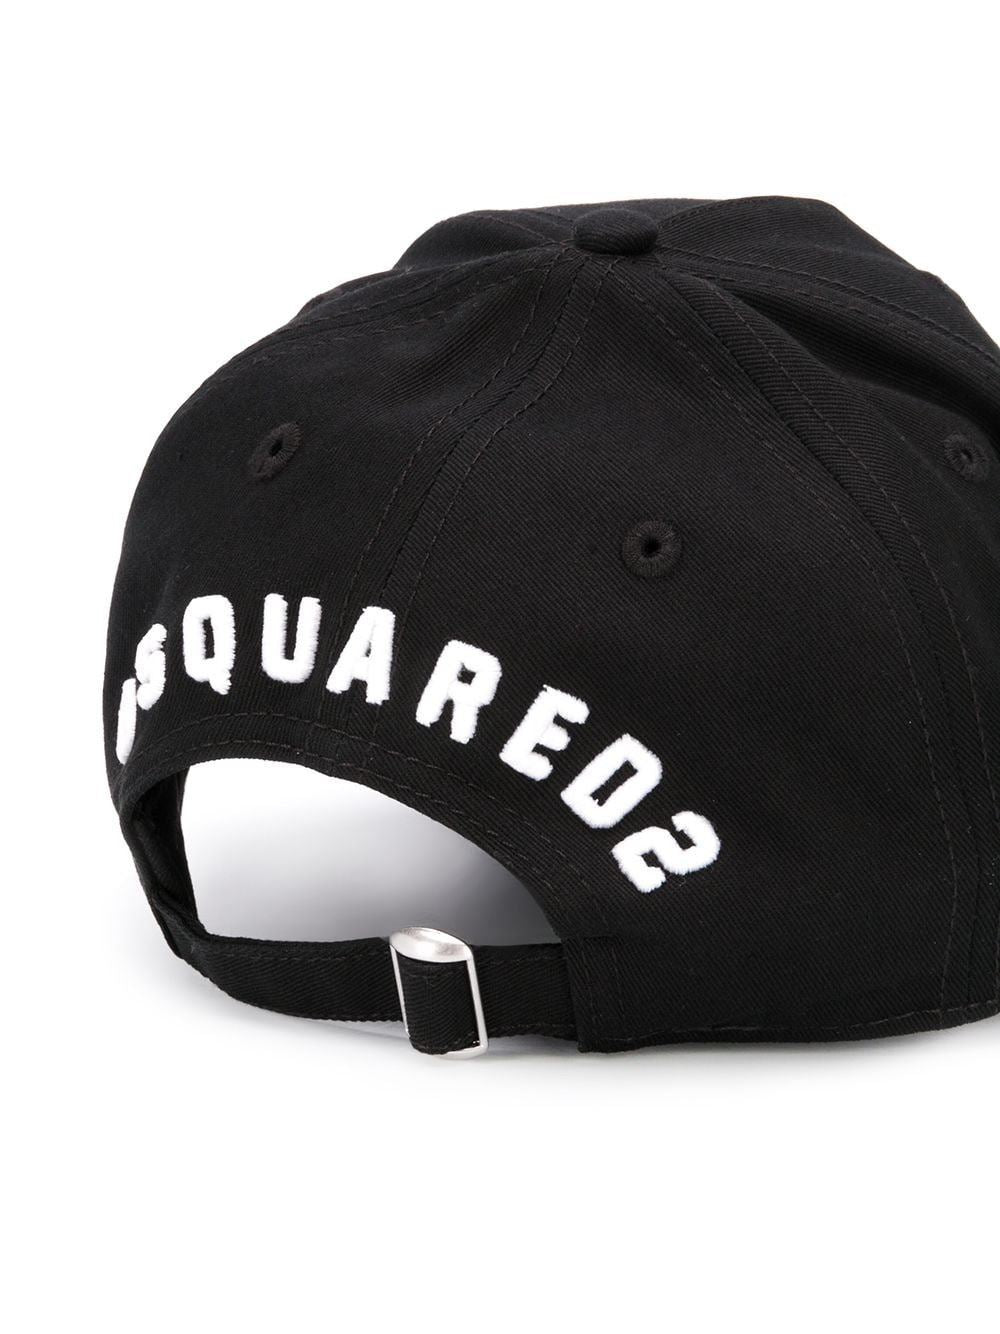 Dsquared2 icon logo cap black - Maison De Fashion